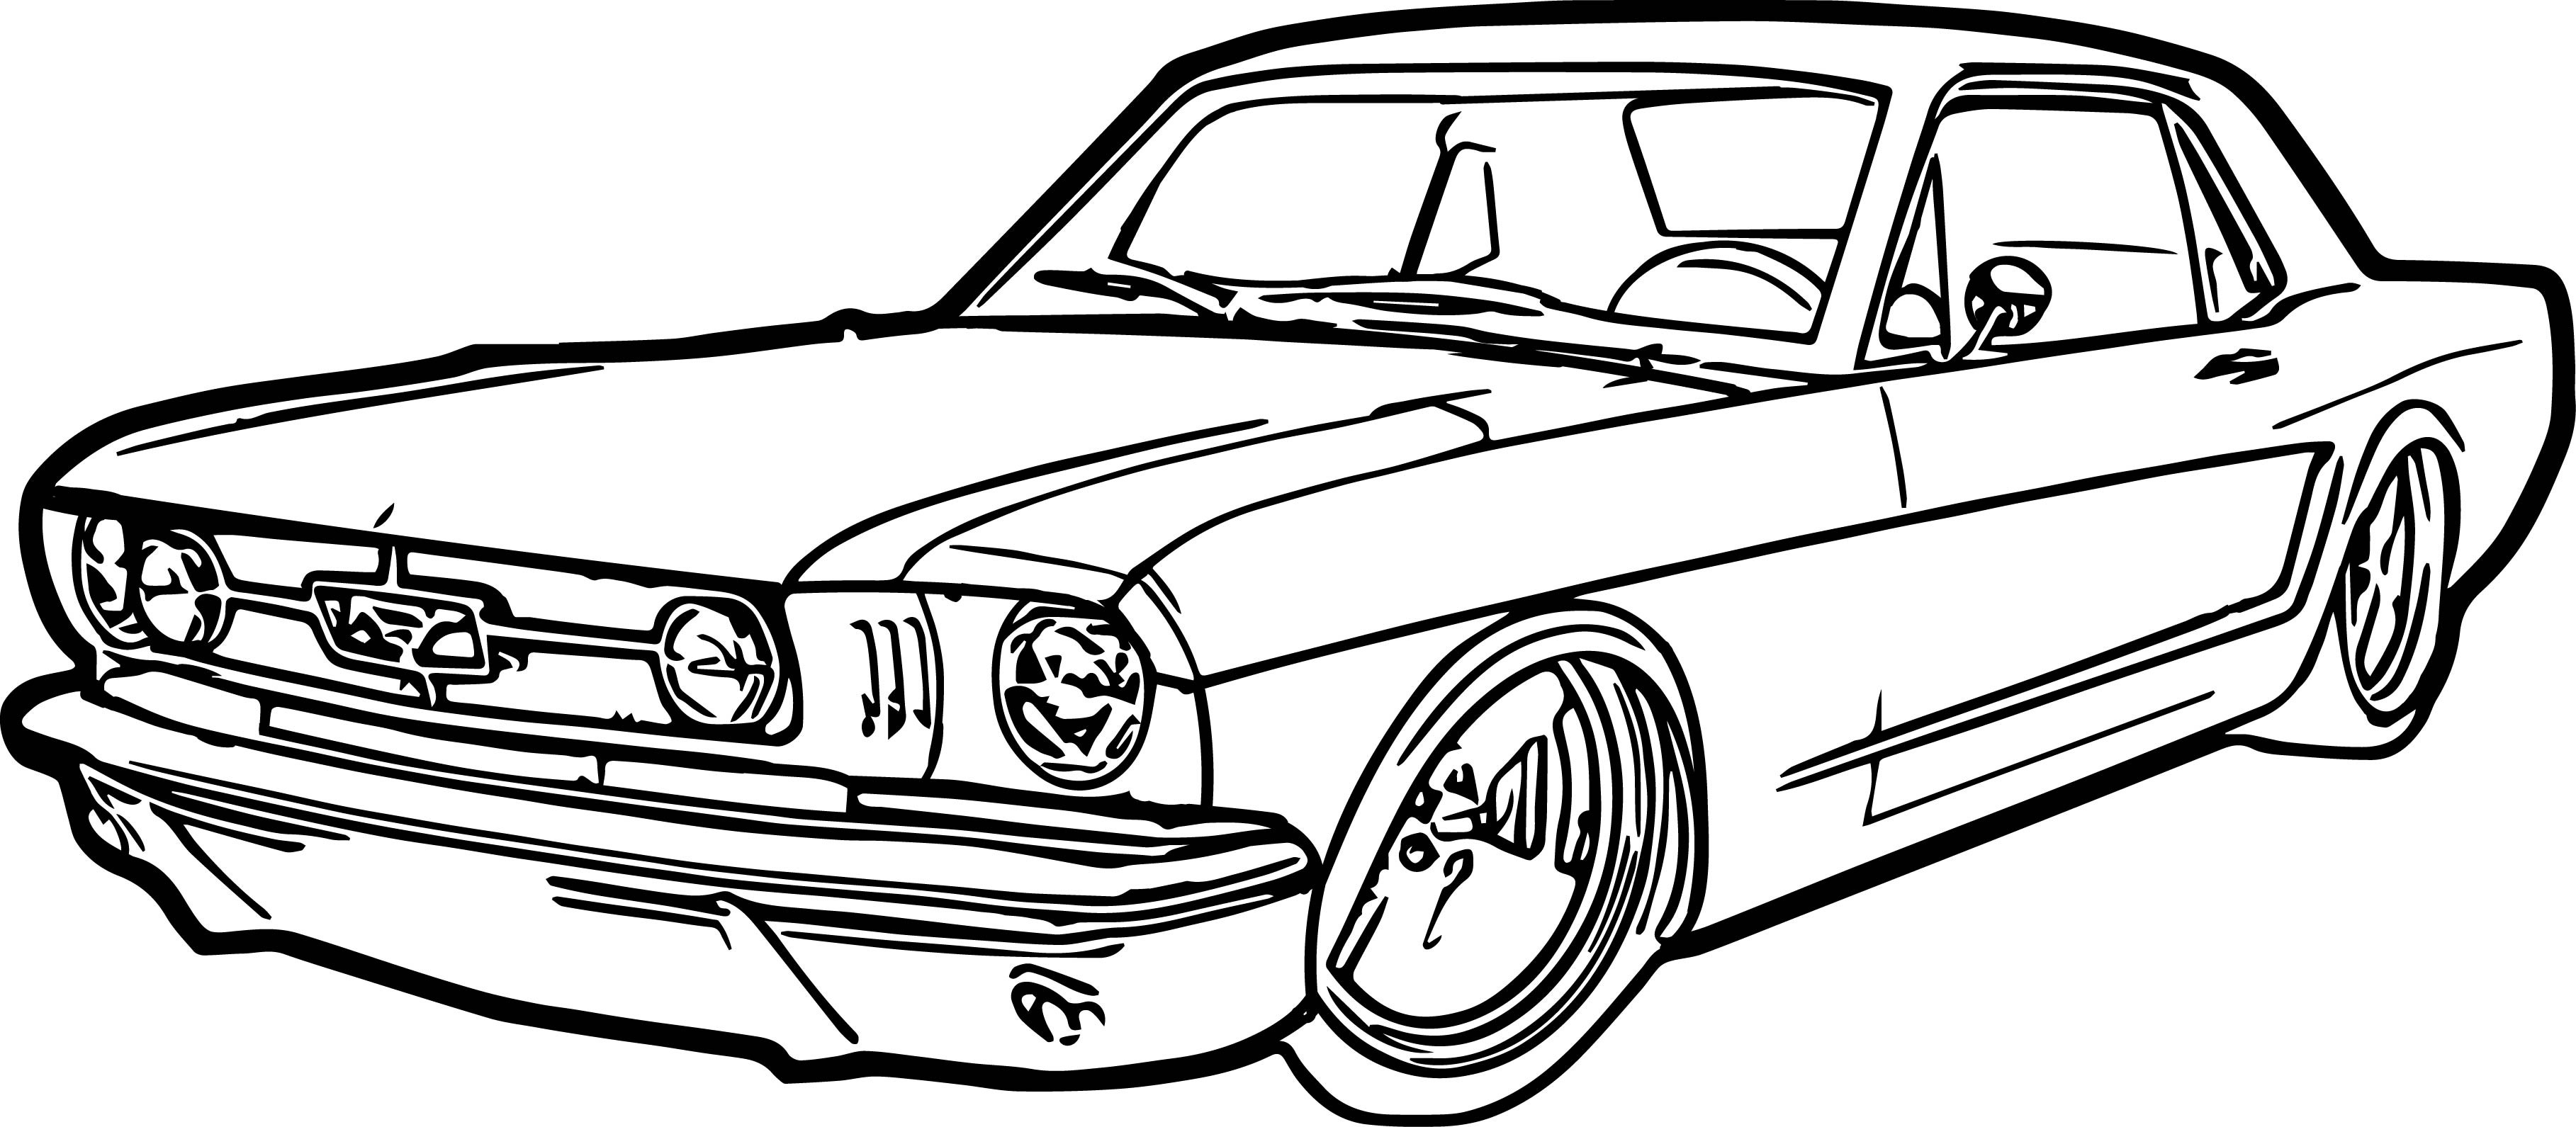 3635x1591 Cars Coloring Pages For Kids Inspirational Car Coloring Pages Free